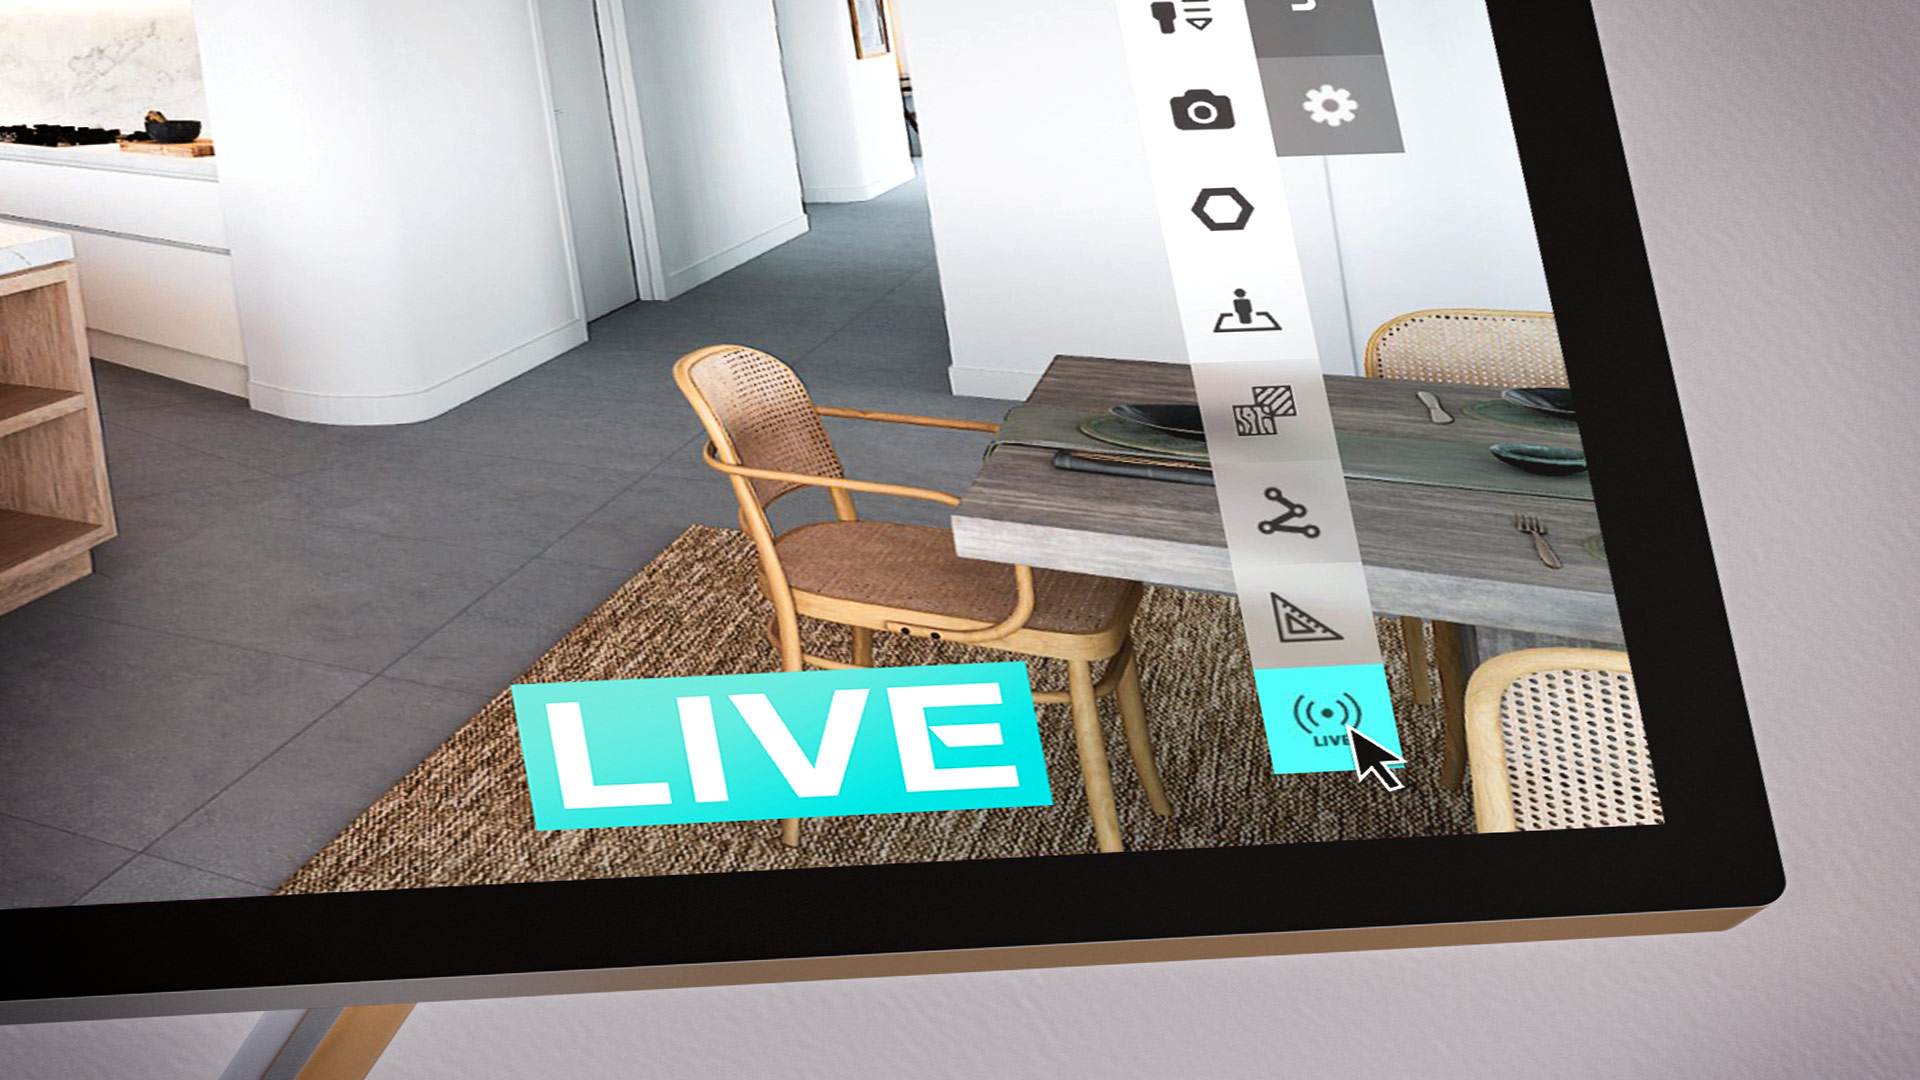 ▲ A single button click activates Realspace Live to stream a virtual open home tour to anyone, anywhere with an online connection.